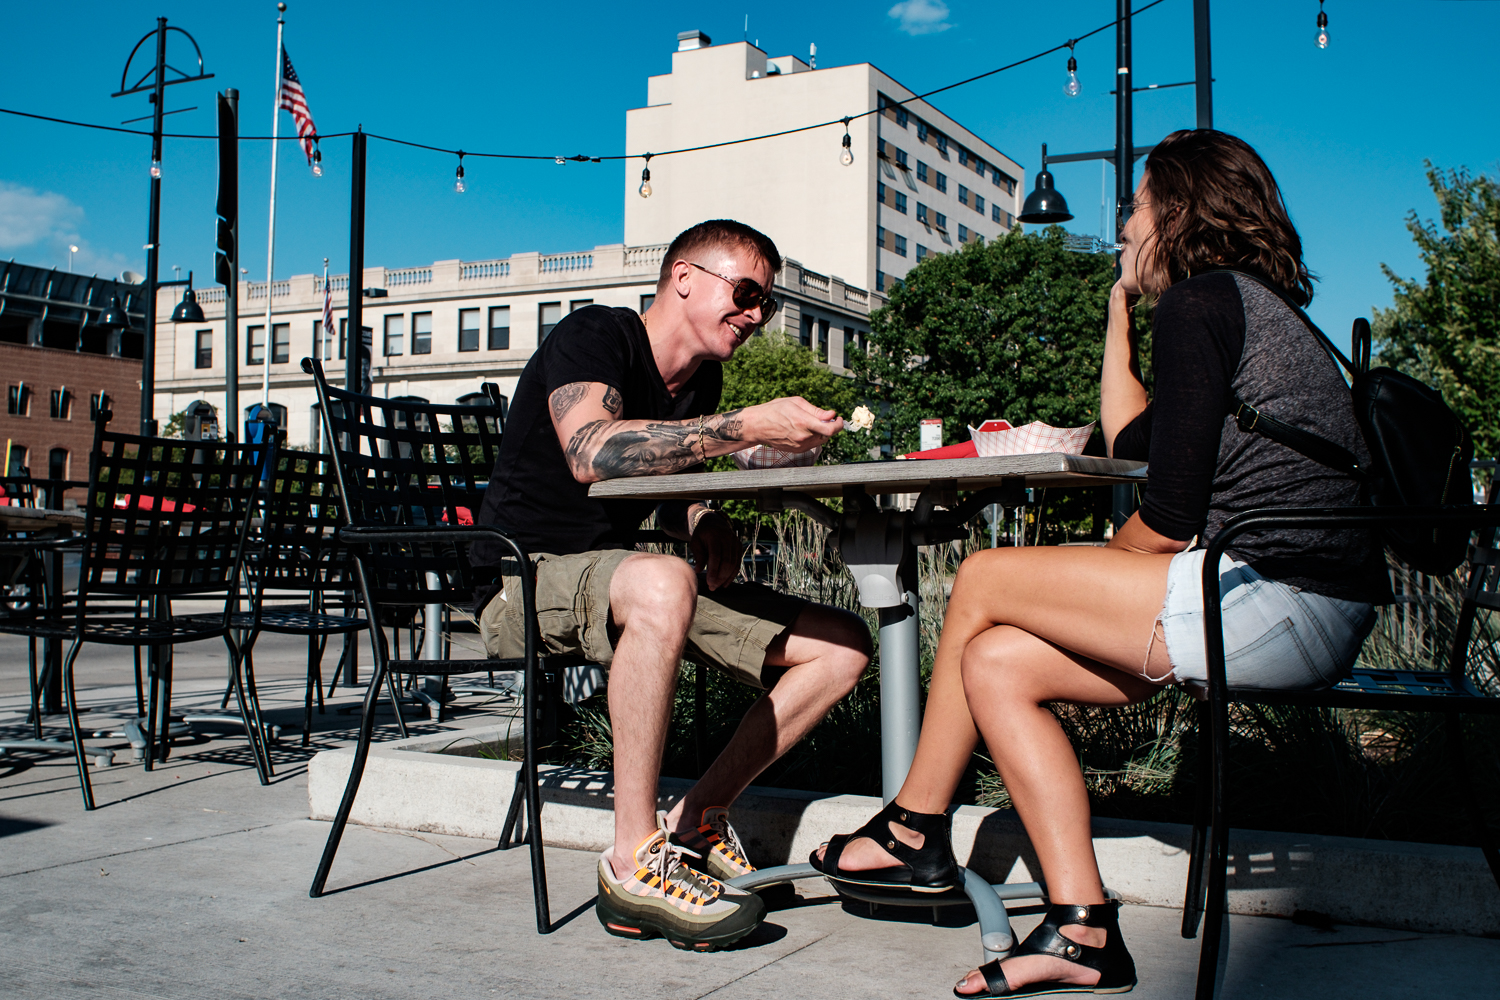 The Iowa City Downtown District's Taste of Iowa City drew locals and visitors from a little further afield on Wednesday, Aug. 22, 2018.